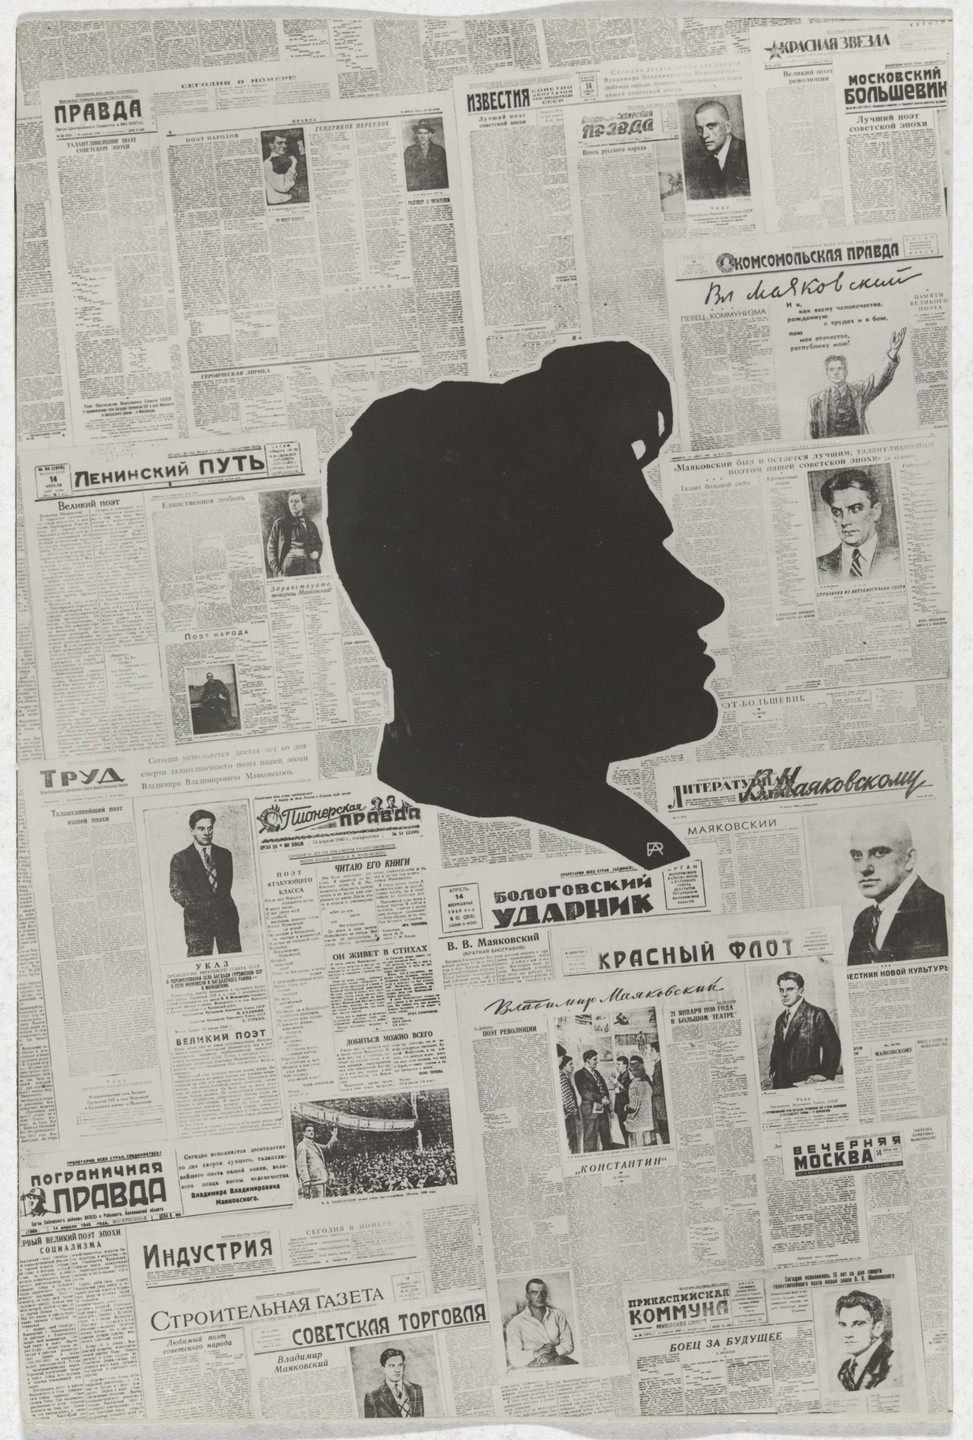 Aleksandr Rodchenko, Varvara Stepanova. Page layout for Mayakovsky Memorial issue of USSR in Construction, no. 7. 1940